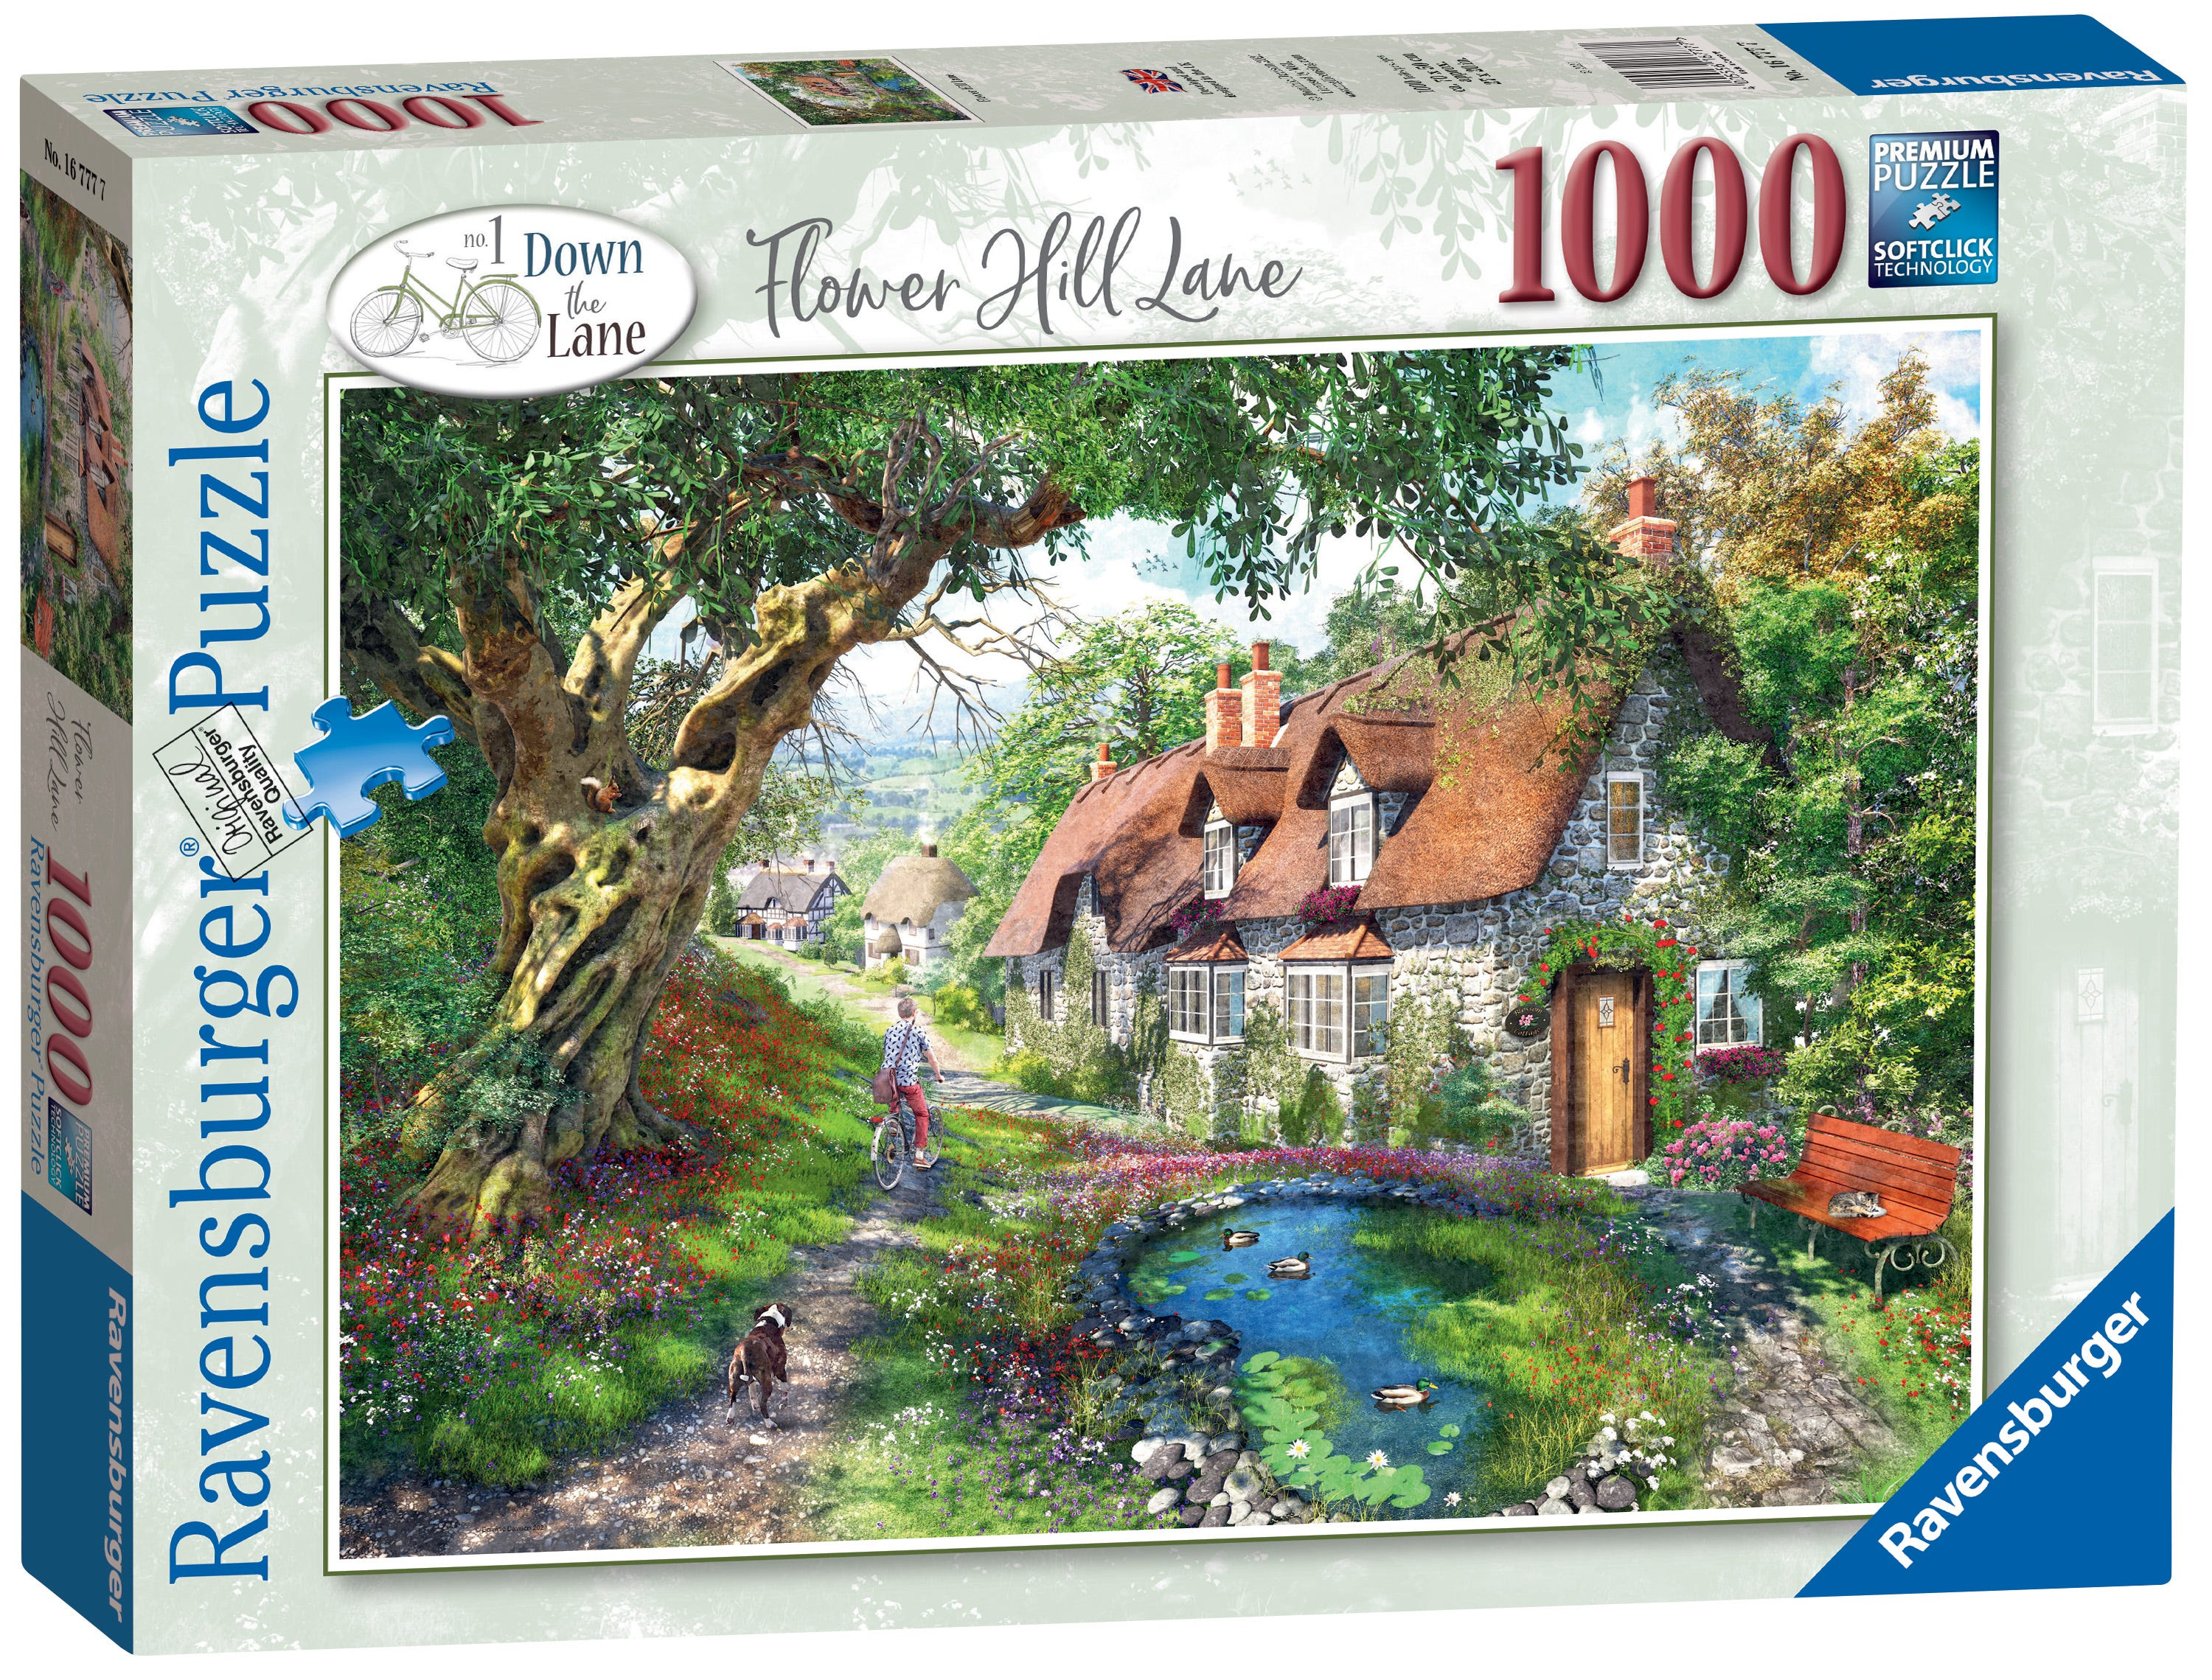 Ravensburger Down The Lane No.1, Flower Hill Lane 1000pc Jigsaw Puzzle